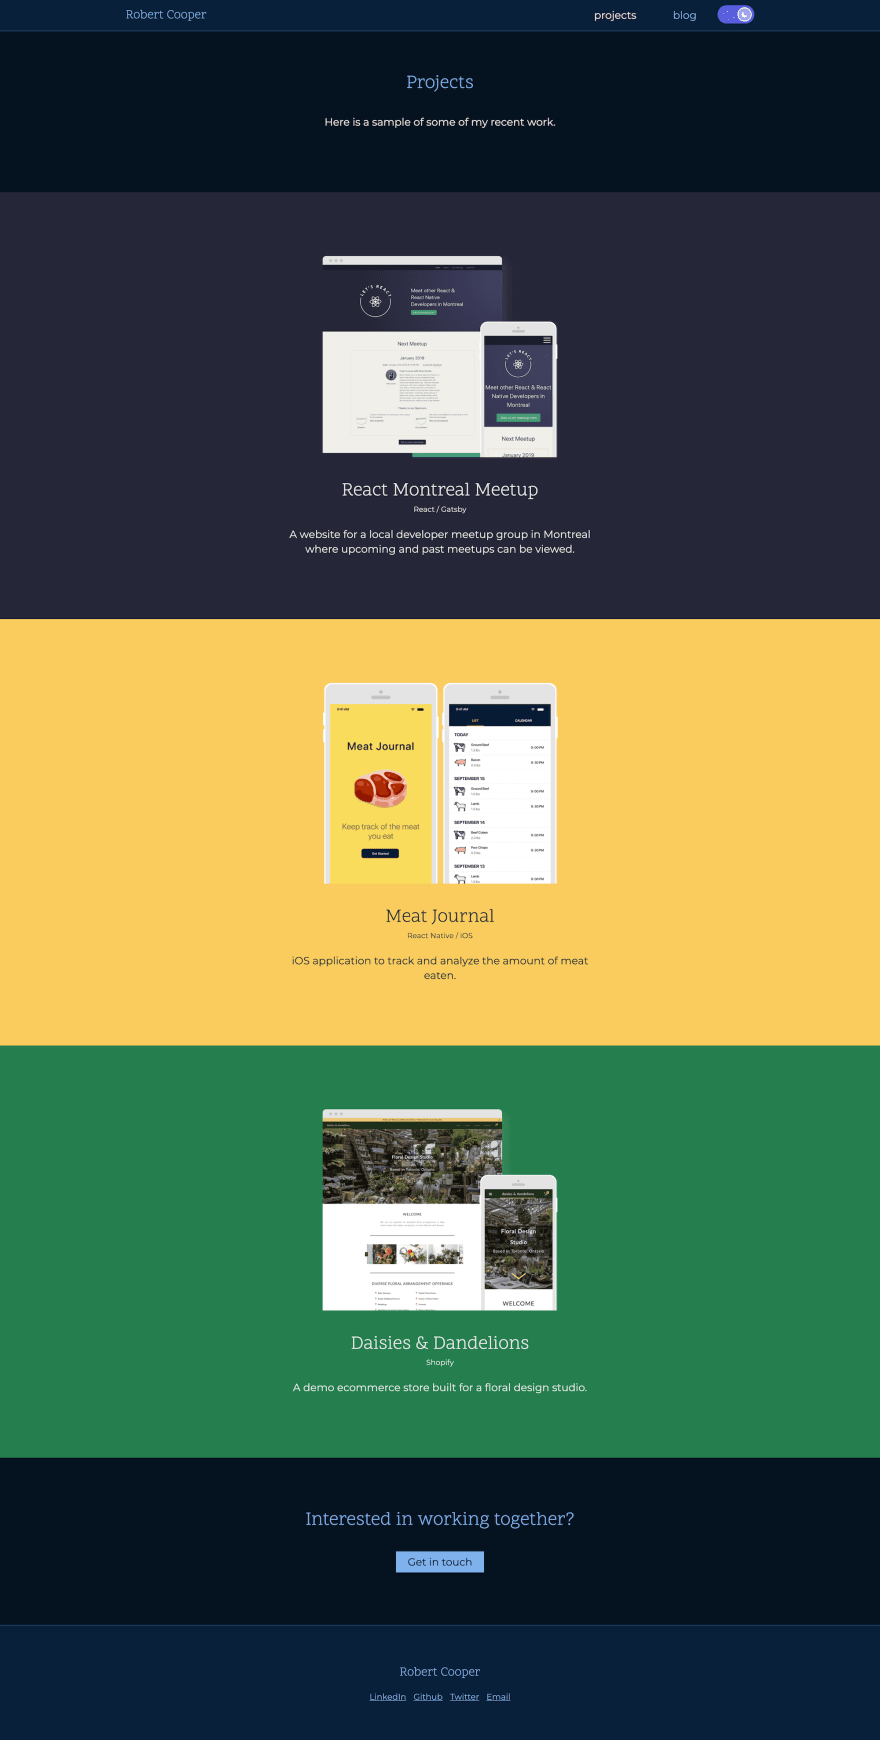 The new projects page of the website showing projects for the React Montreal Meetup group, the Meat Journal mobile app, and an ecommerce Shopify theme called Daisies and Dandelions.